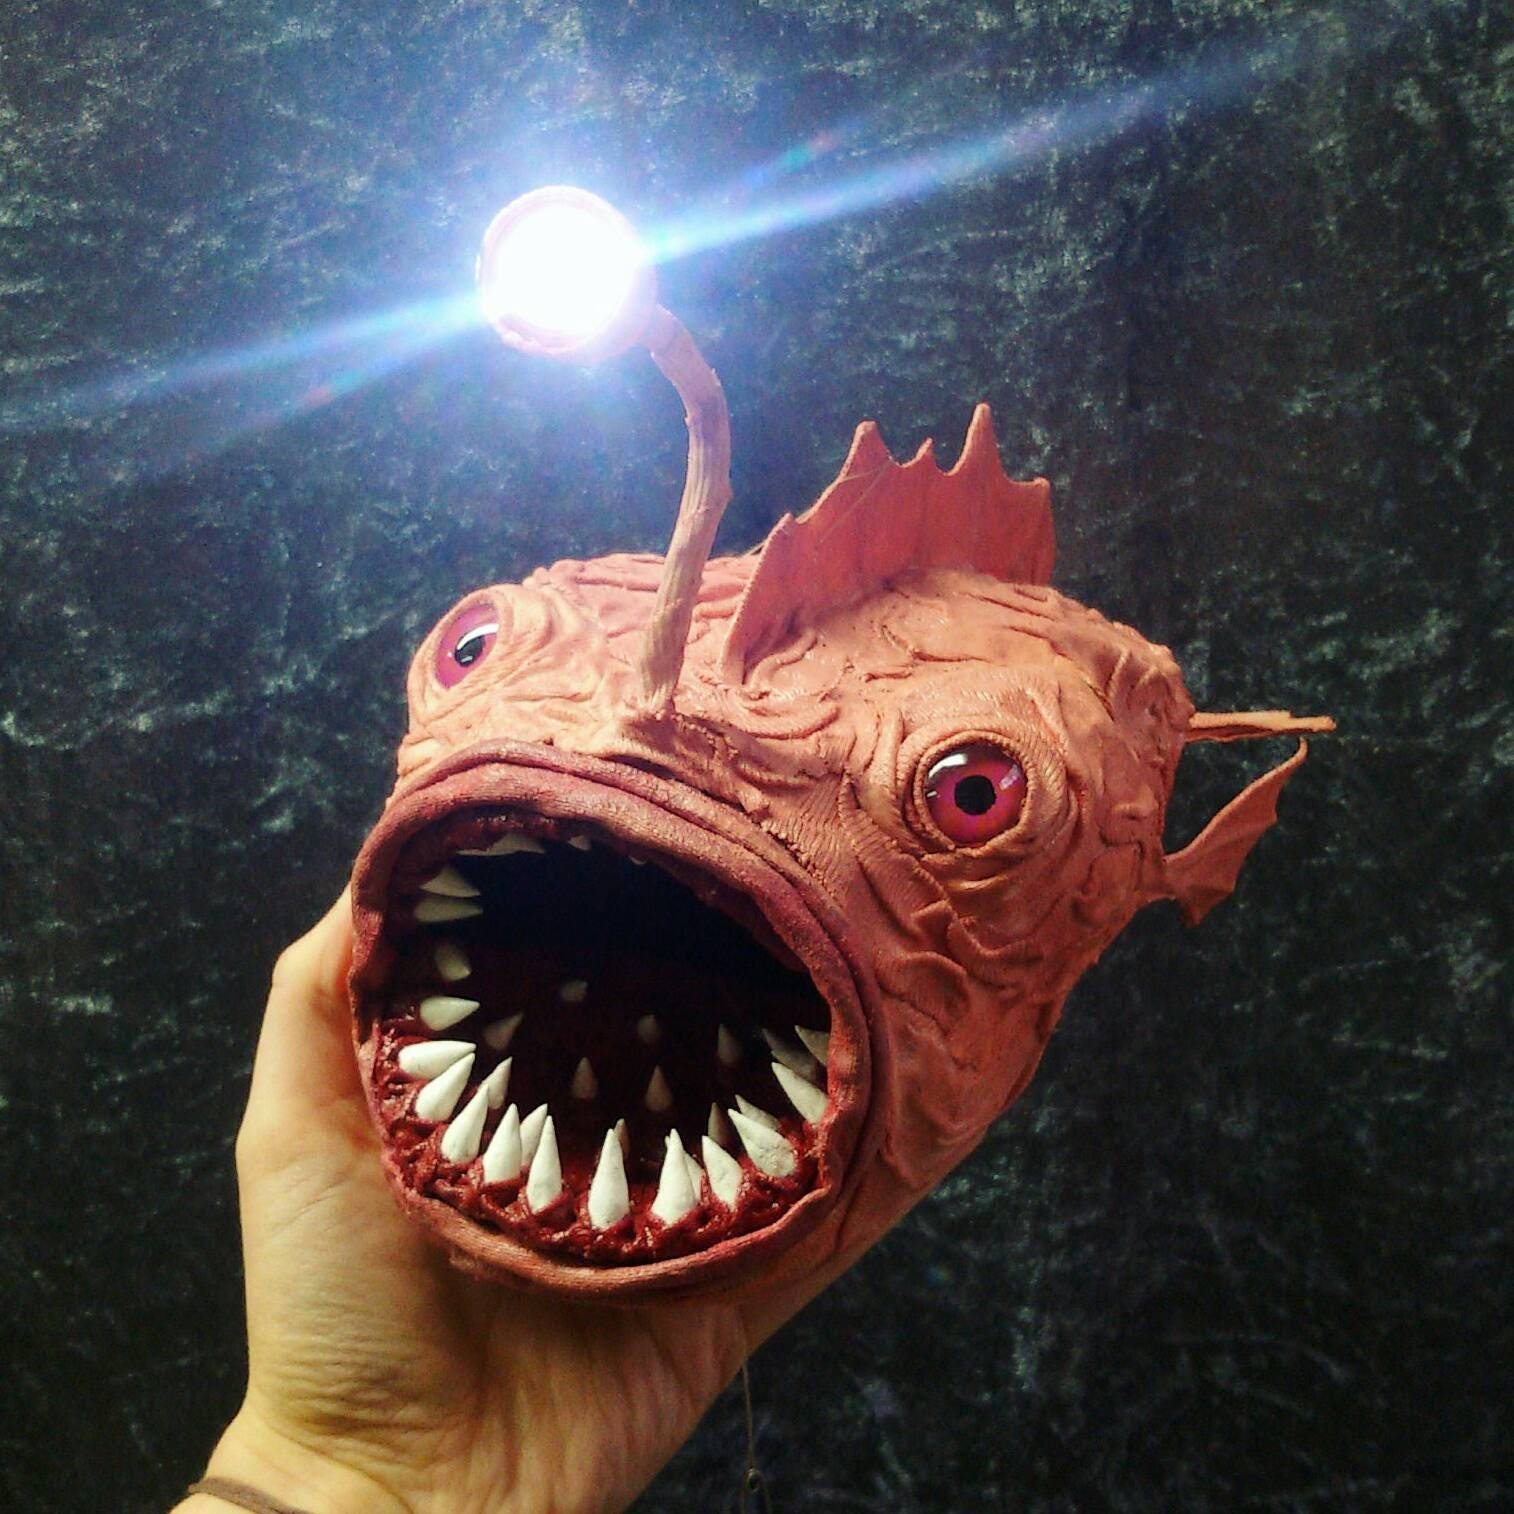 LED anglerfish lamp light skin-colored fish angler sculpture